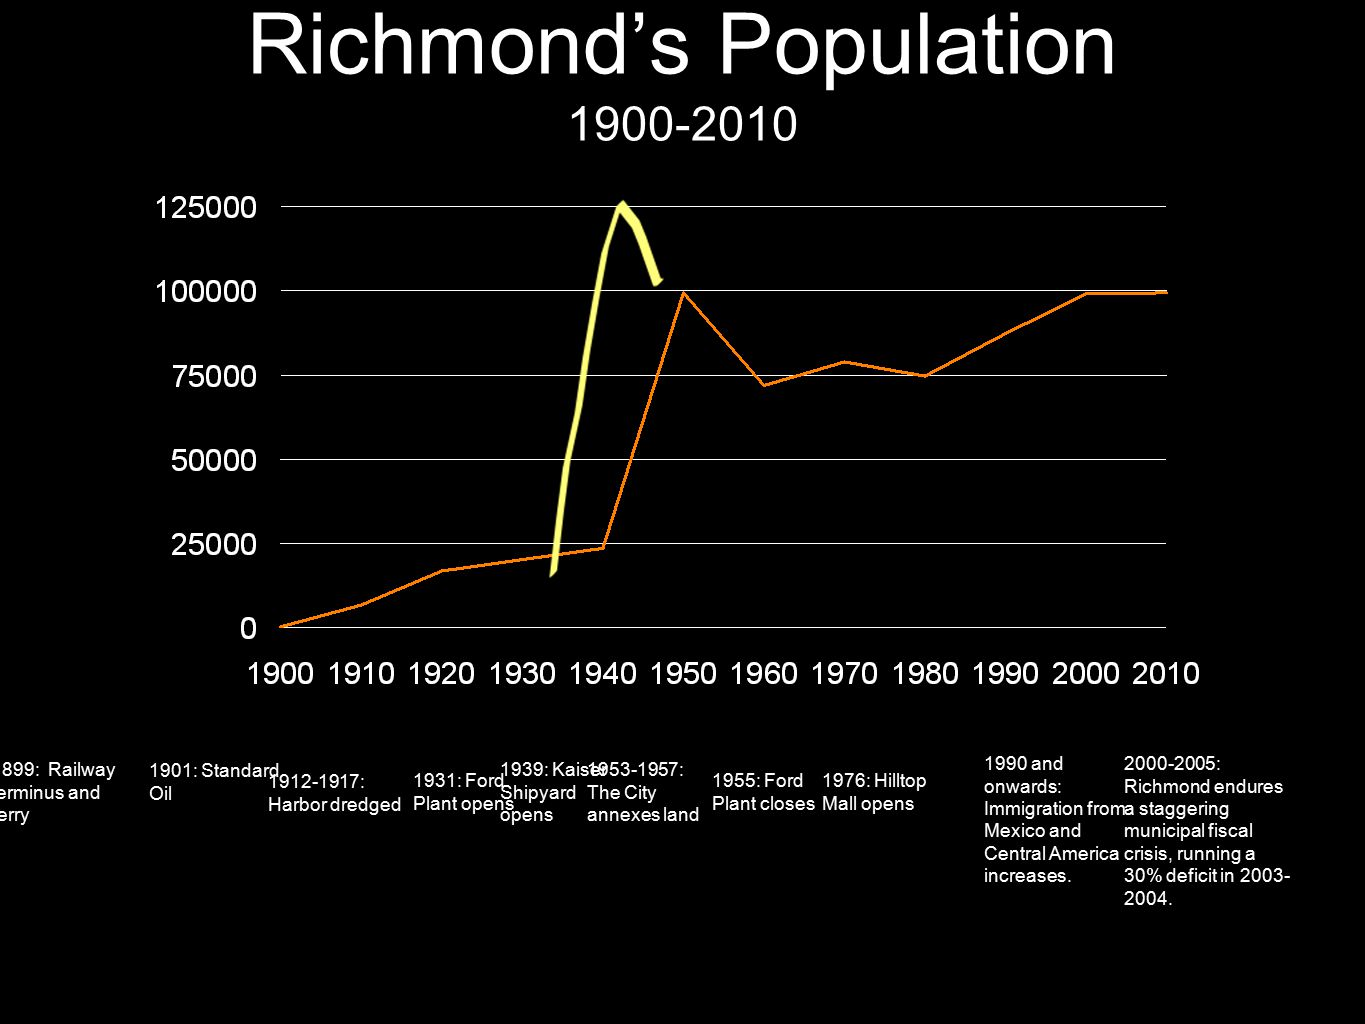 Richmond's Population 1900-2010 1899: Railway terminus and ferry 1901: Standard Oil 1912-1917: Harbor dredged 1931: Ford Plant opens 1939: Kaiser Ship